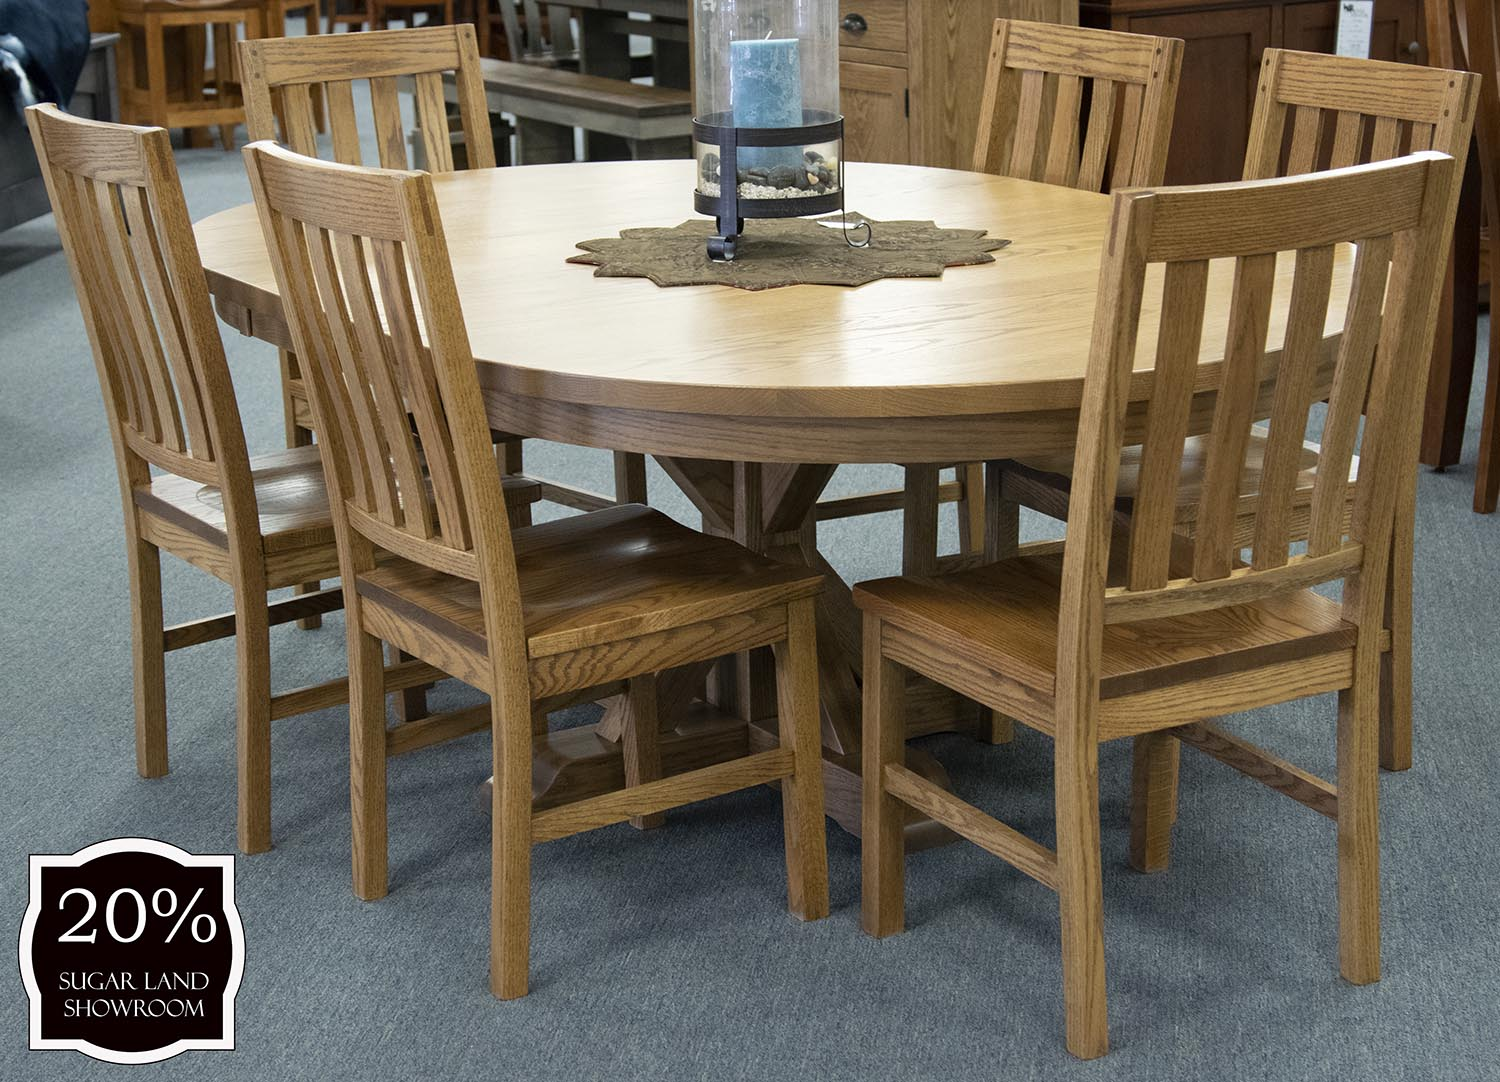 Swell Alberta Pedestal Table And Chairs Set 6 Side Chairs Cjindustries Chair Design For Home Cjindustriesco